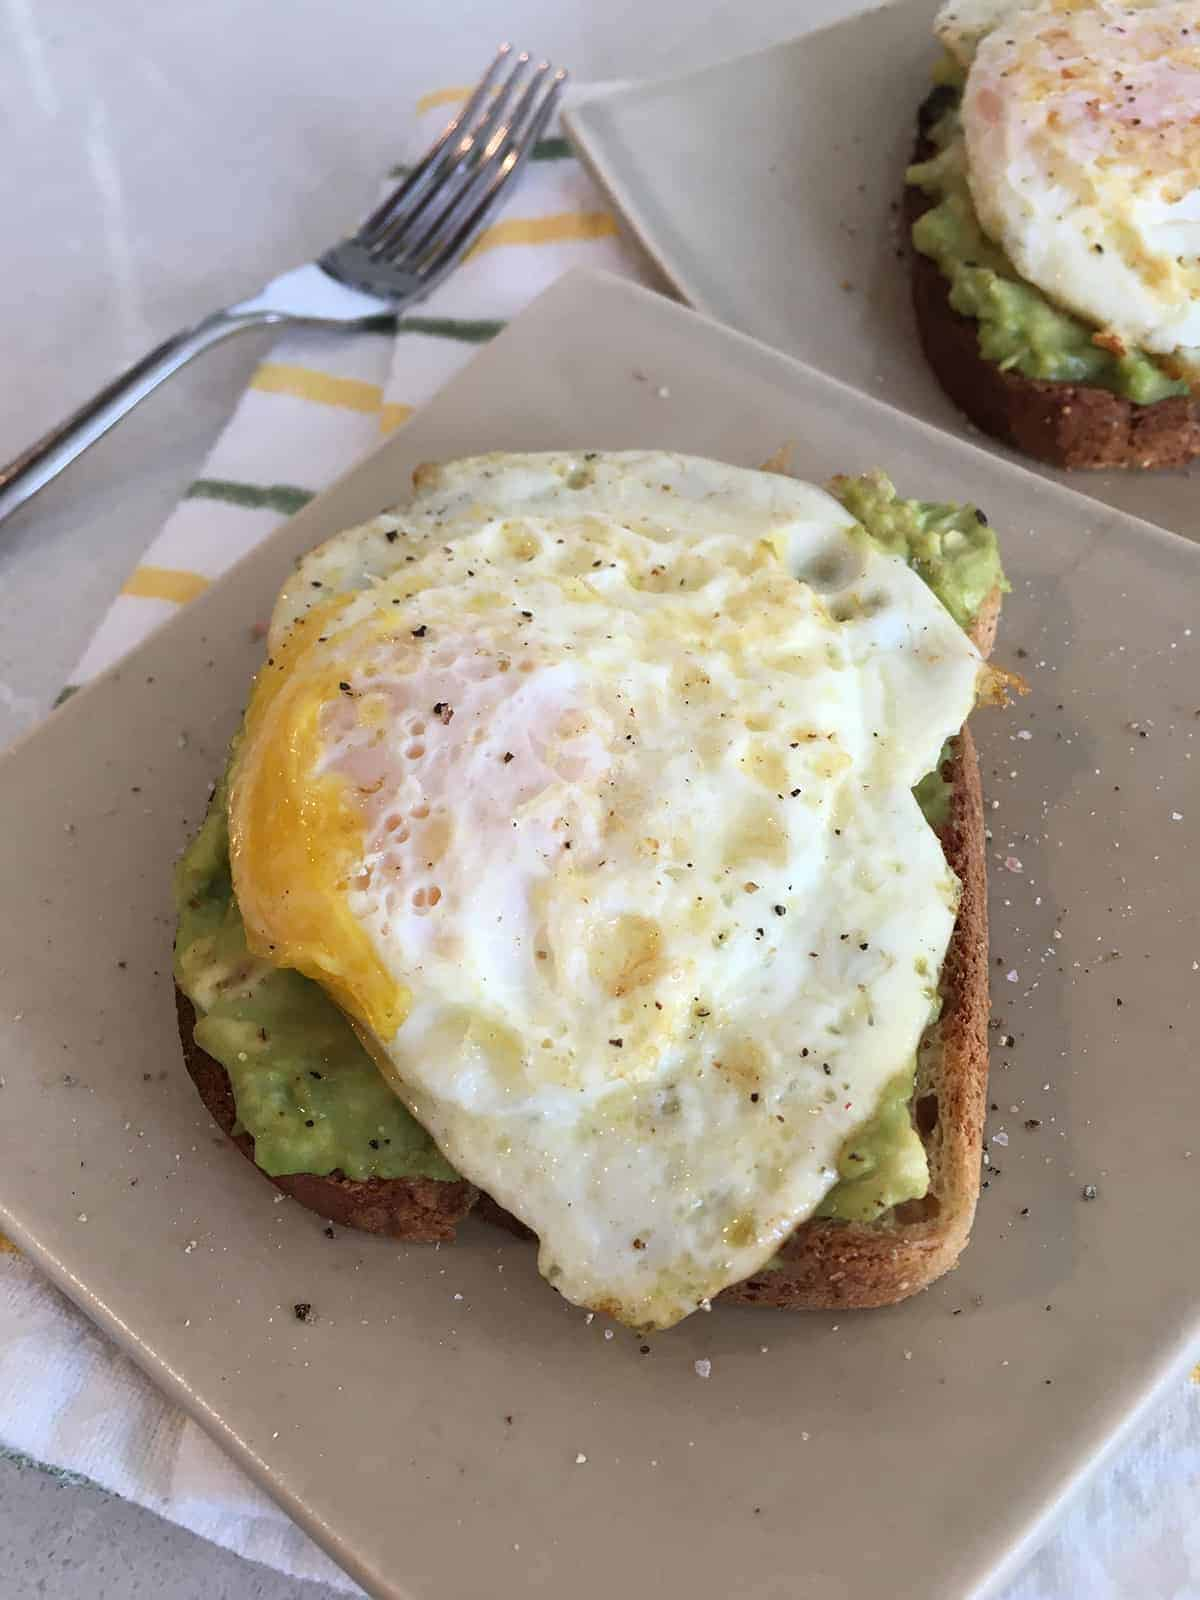 Avocado toast with egg on tan ceramic plates atop a light grey marble countertop